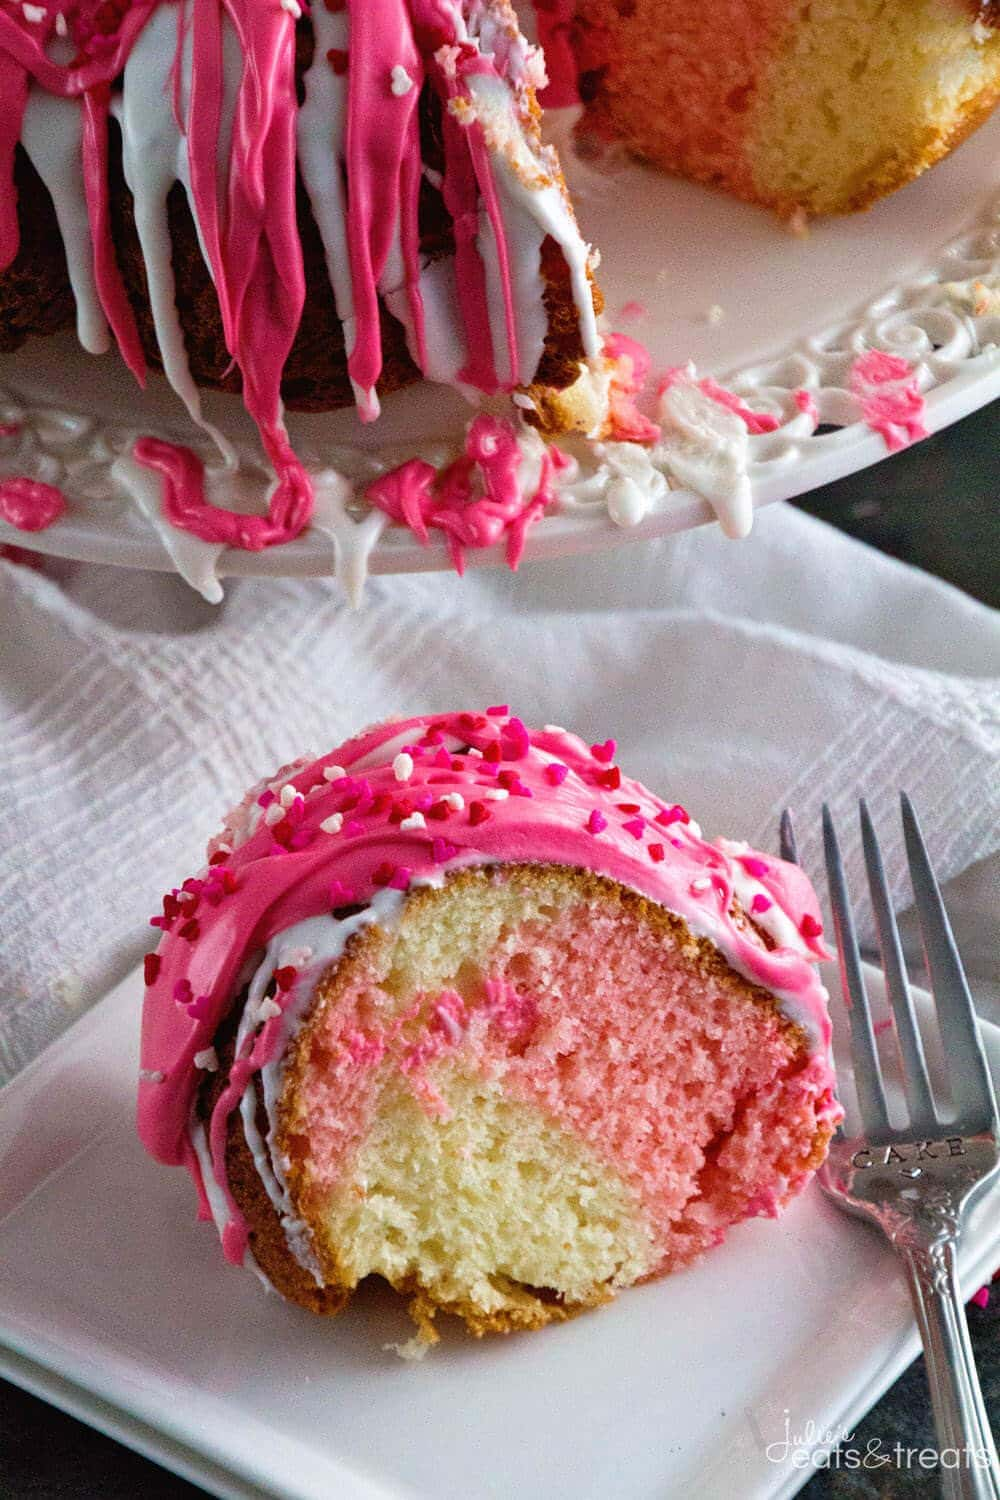 Swirl Valentine Cake ~ Super Easy Dessert Starts with a Boxed Cake Mix and Becomes the Perfect Easy Valentine's Day Dessert!